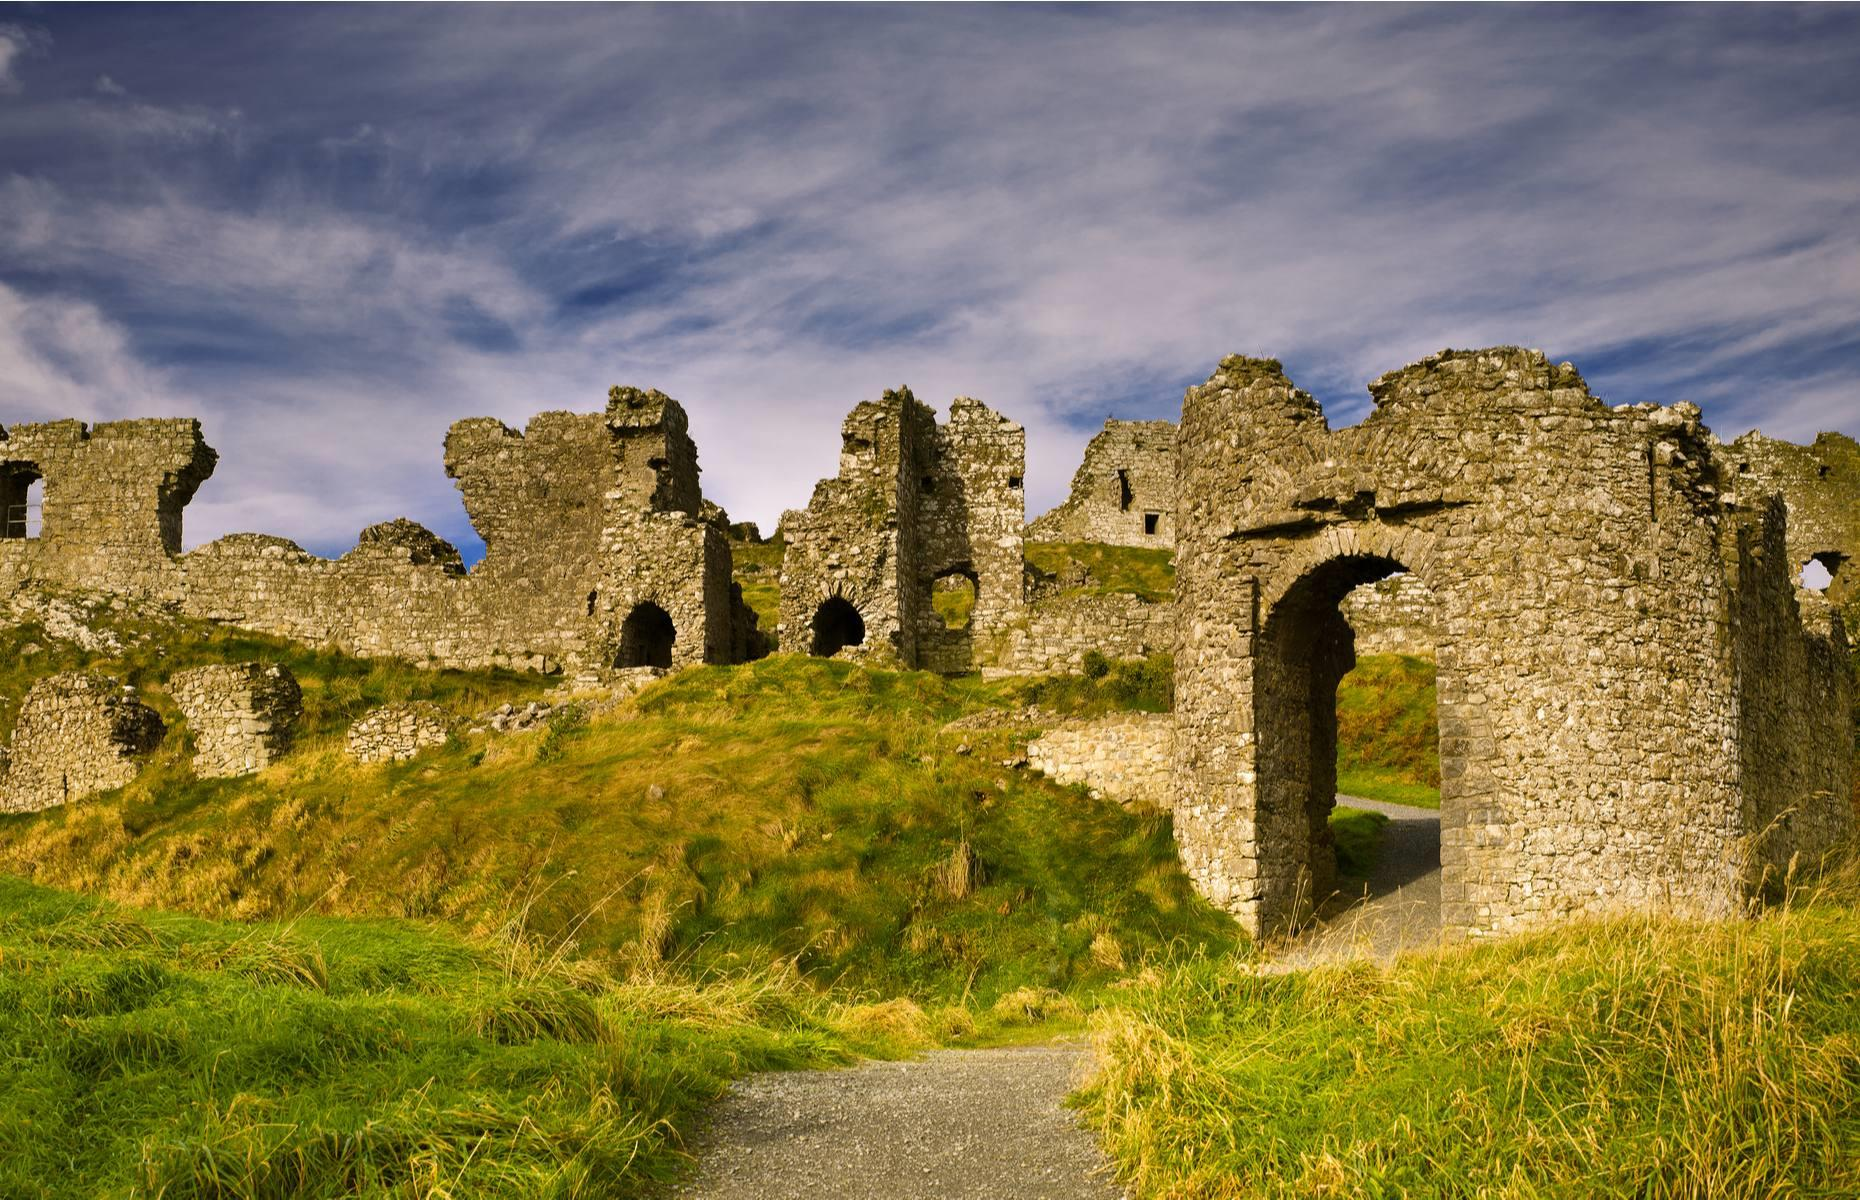 Slide 20 of 29: Built high on a rocky outcrop west of Dublin, the ruins of Dunamase can be seen from miles around. The castle was built by the Normans in the 12th century and was an important stronghold.